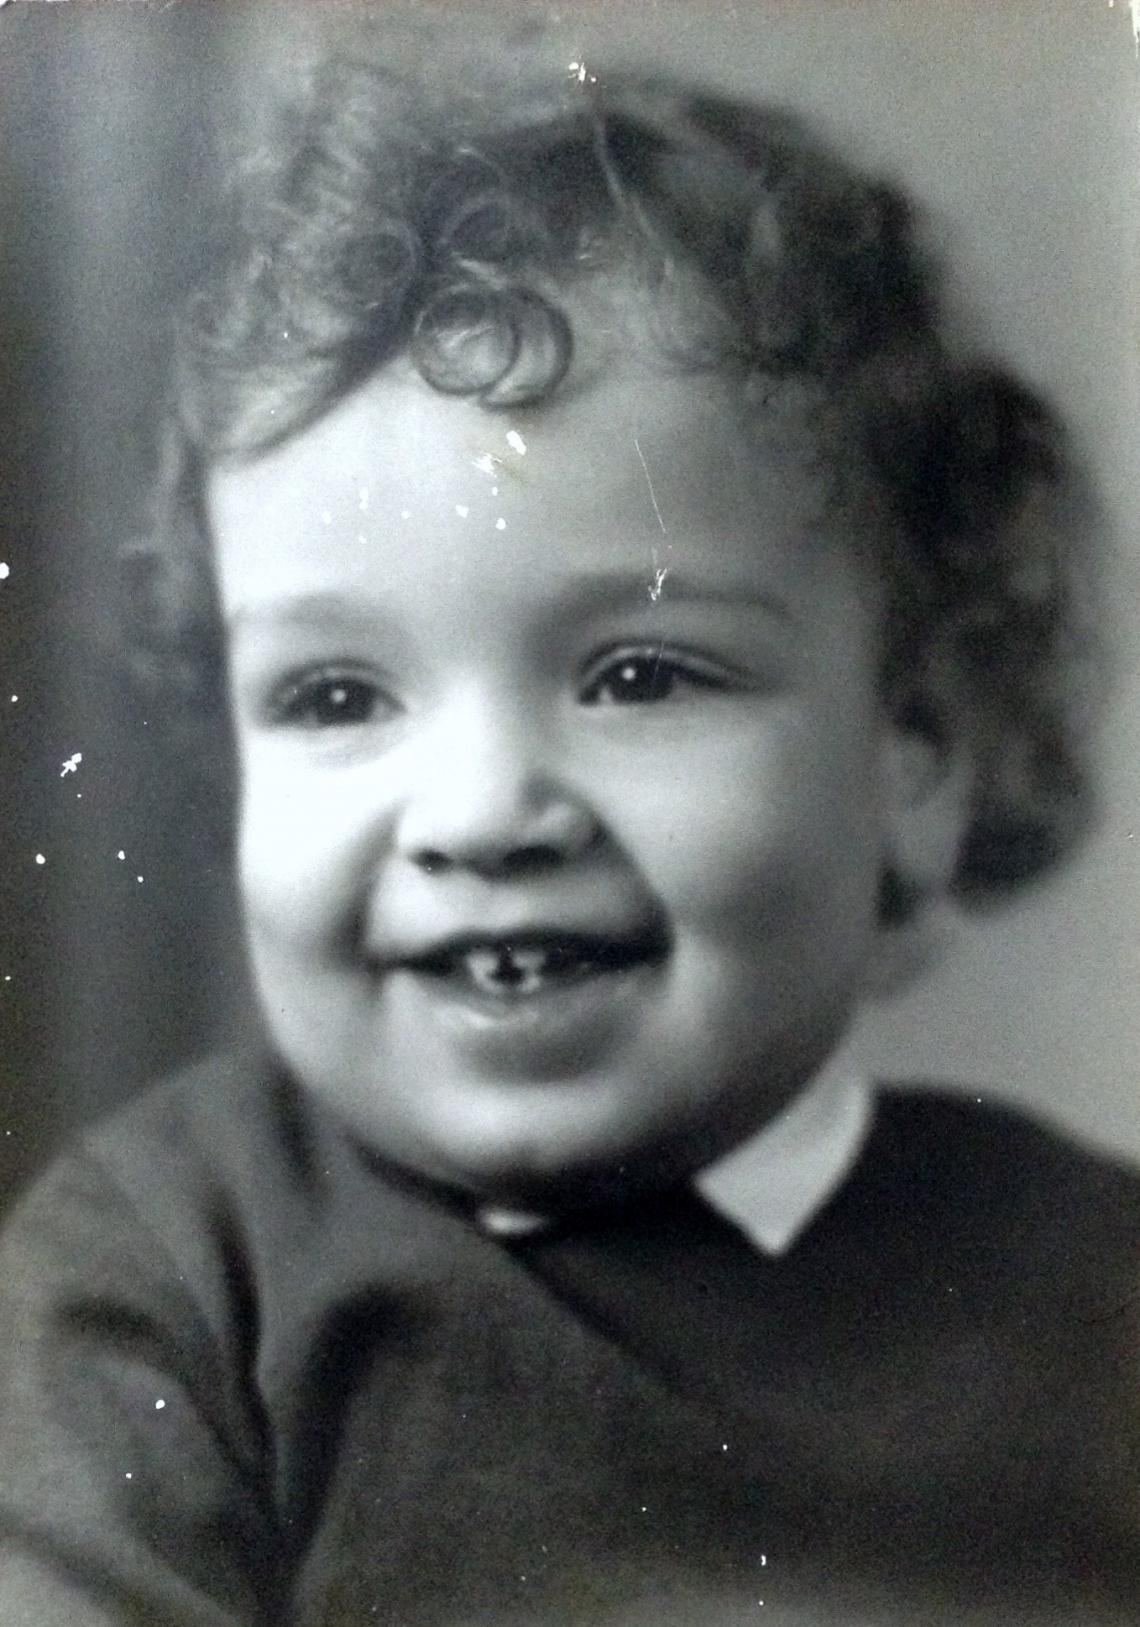 Arthur as a young child